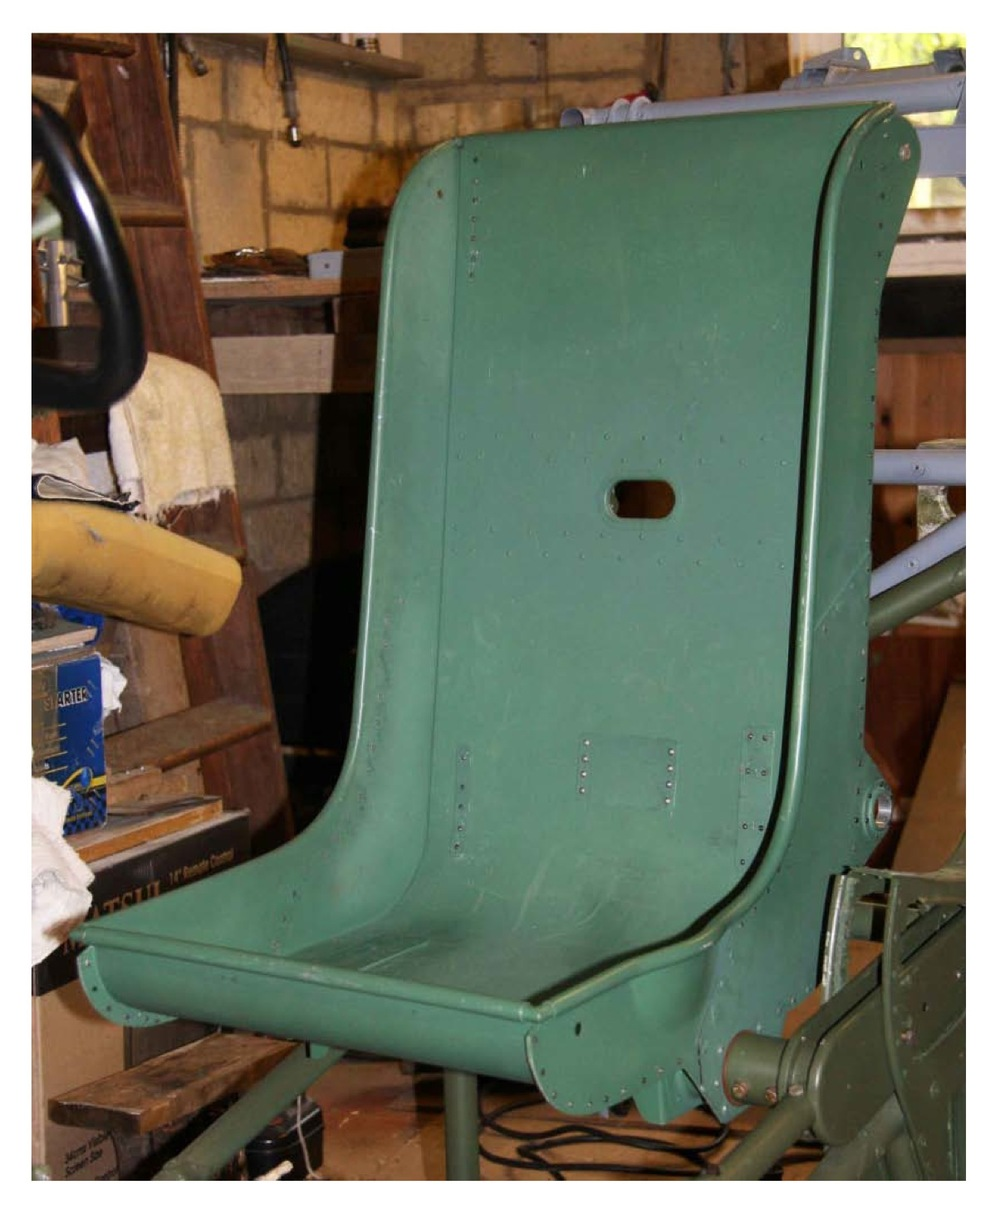 Photo 9: completed pilot's seat